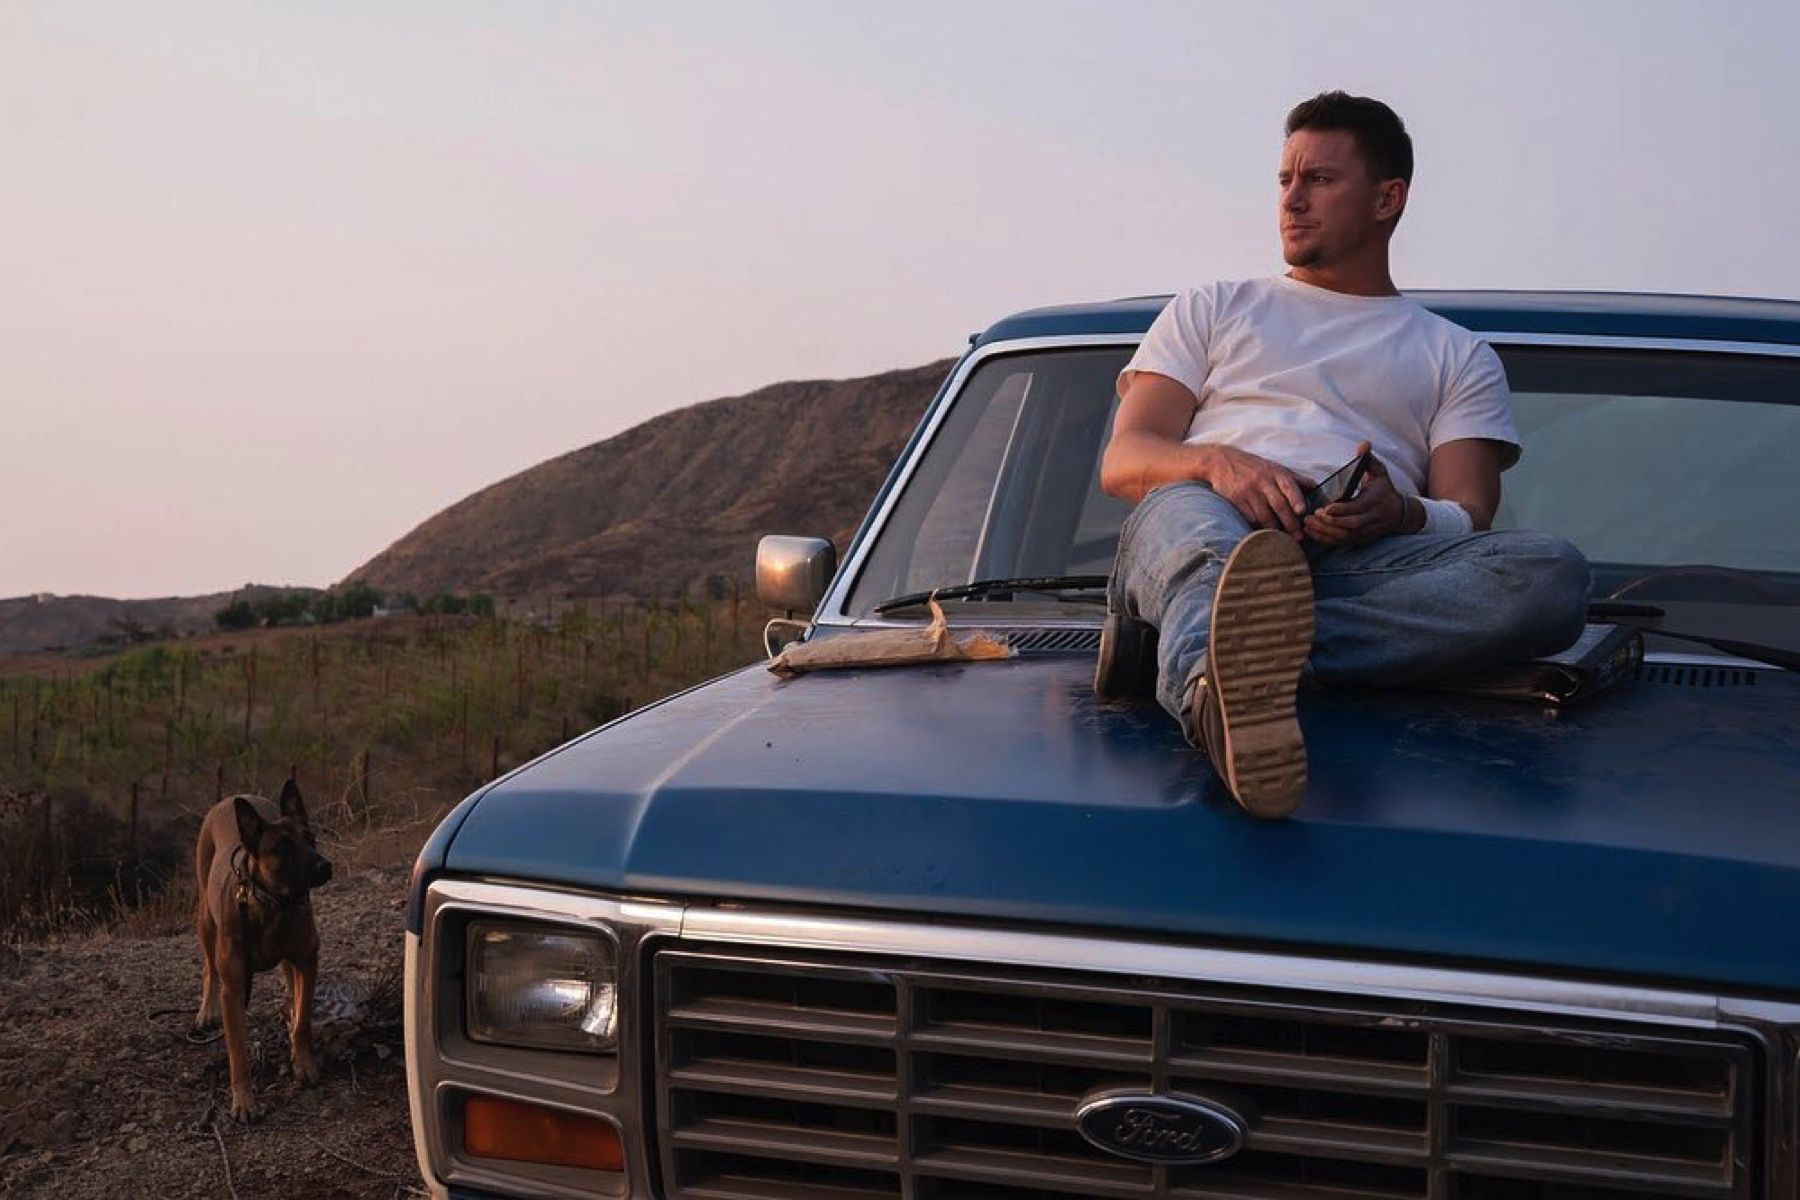 Channing Tatum sits on the hood of a Ford pickup